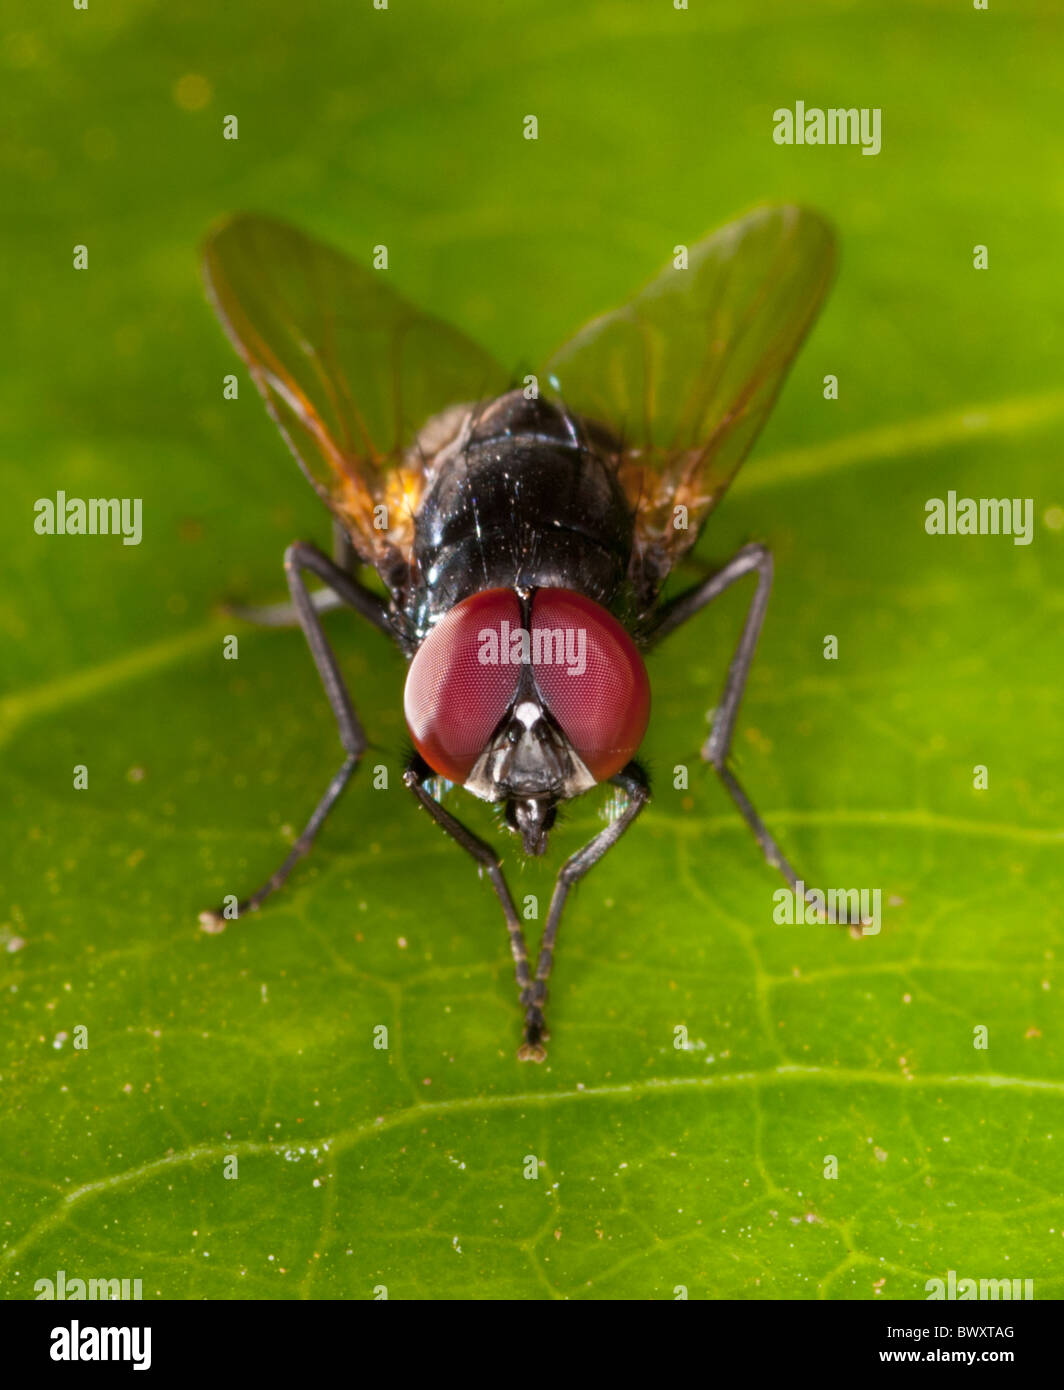 Close-up of a fly (?Tachinidae family) with golden wings and large red eyes Stock Photo